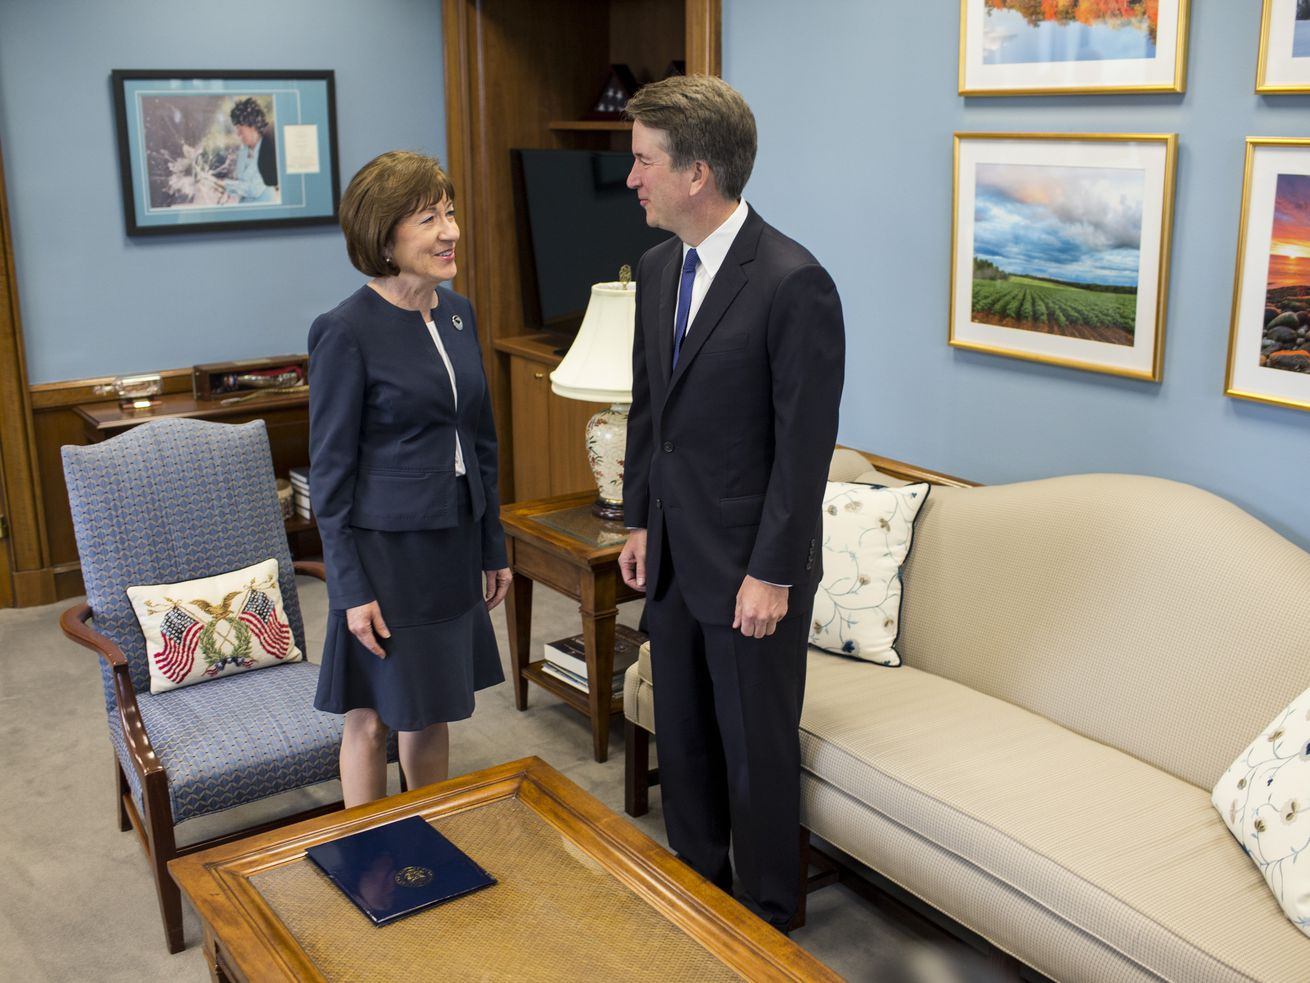 Sen. Susan Collins and Supreme Court nominee Brett Kavanaugh in her office on Capitol Hill on August 21, 2018.